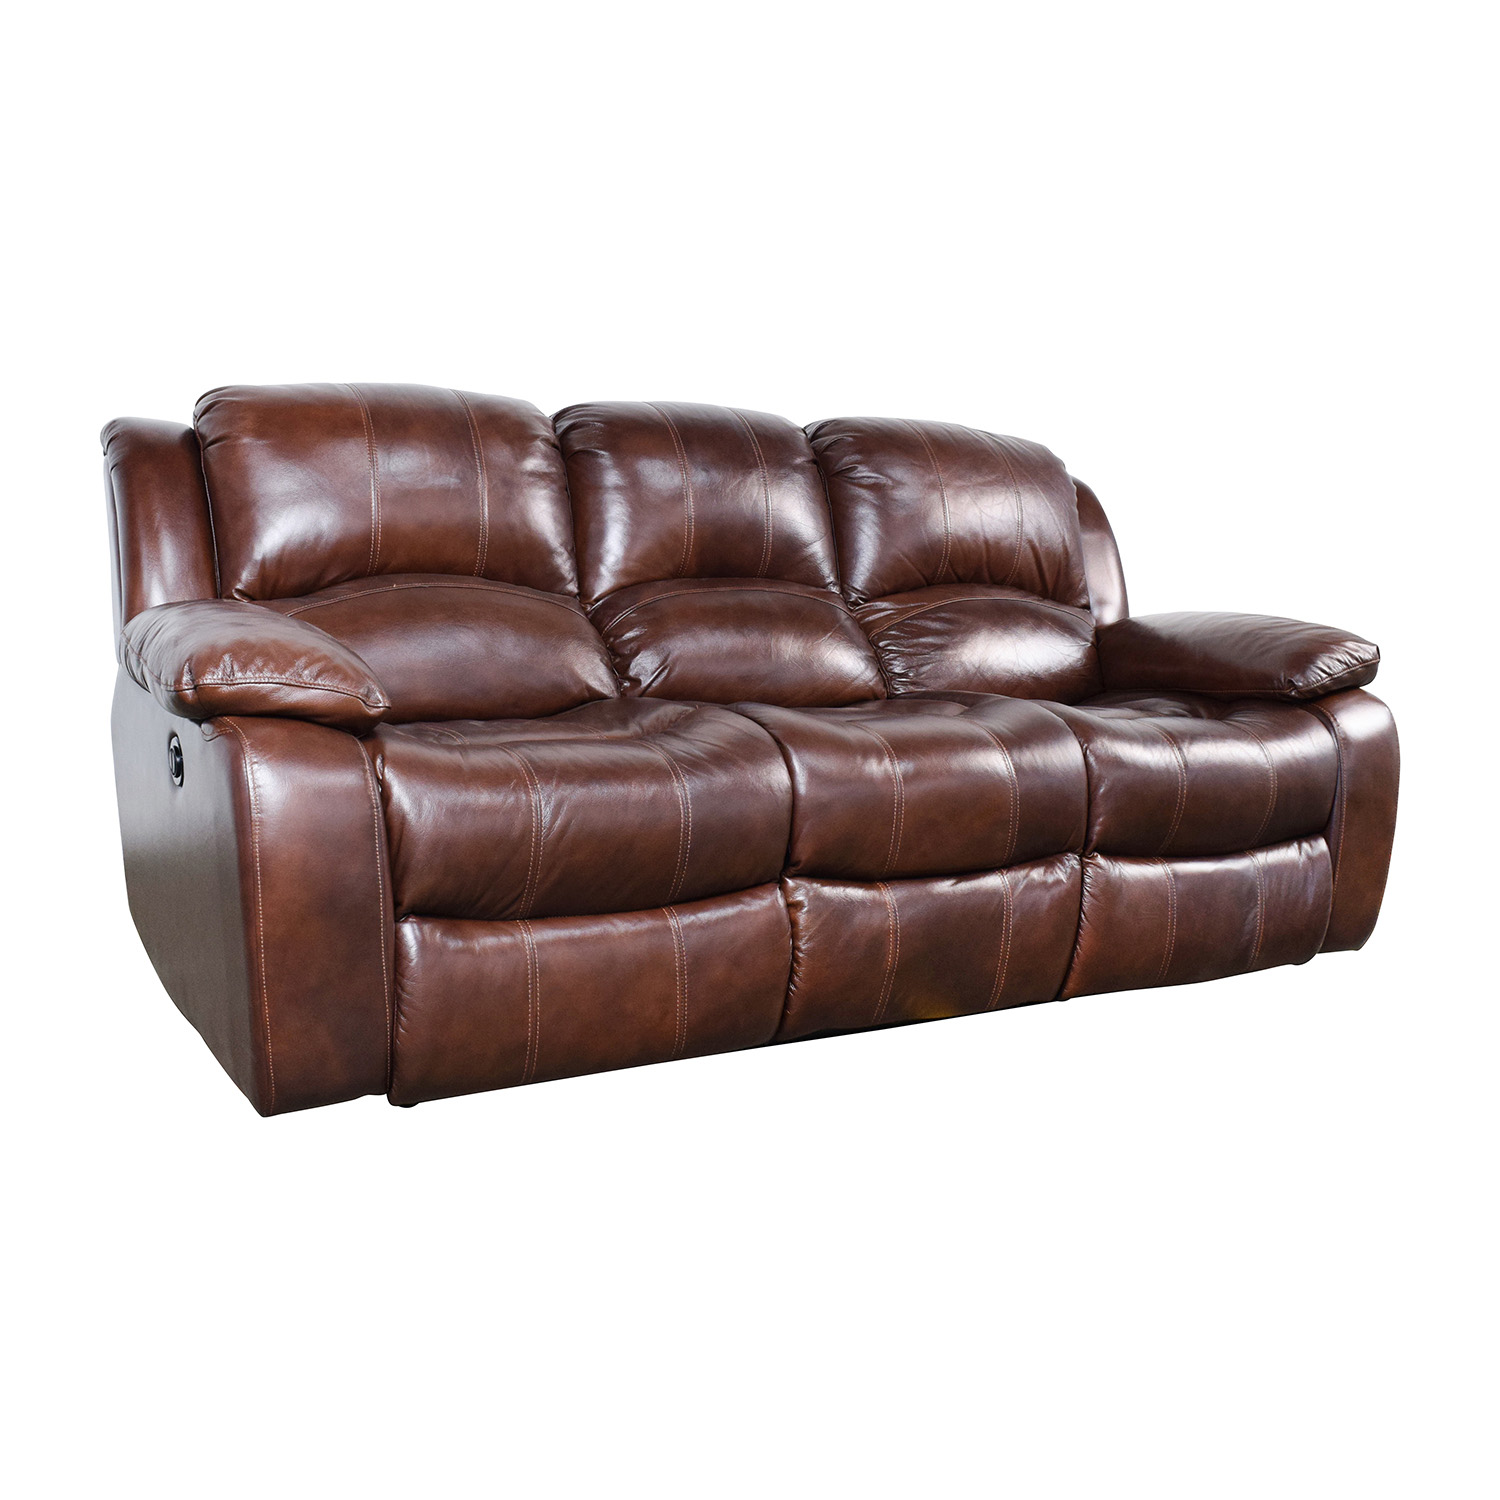 51 off raymour and flanigan raymour flanigan bryant Power reclining sofas and loveseats